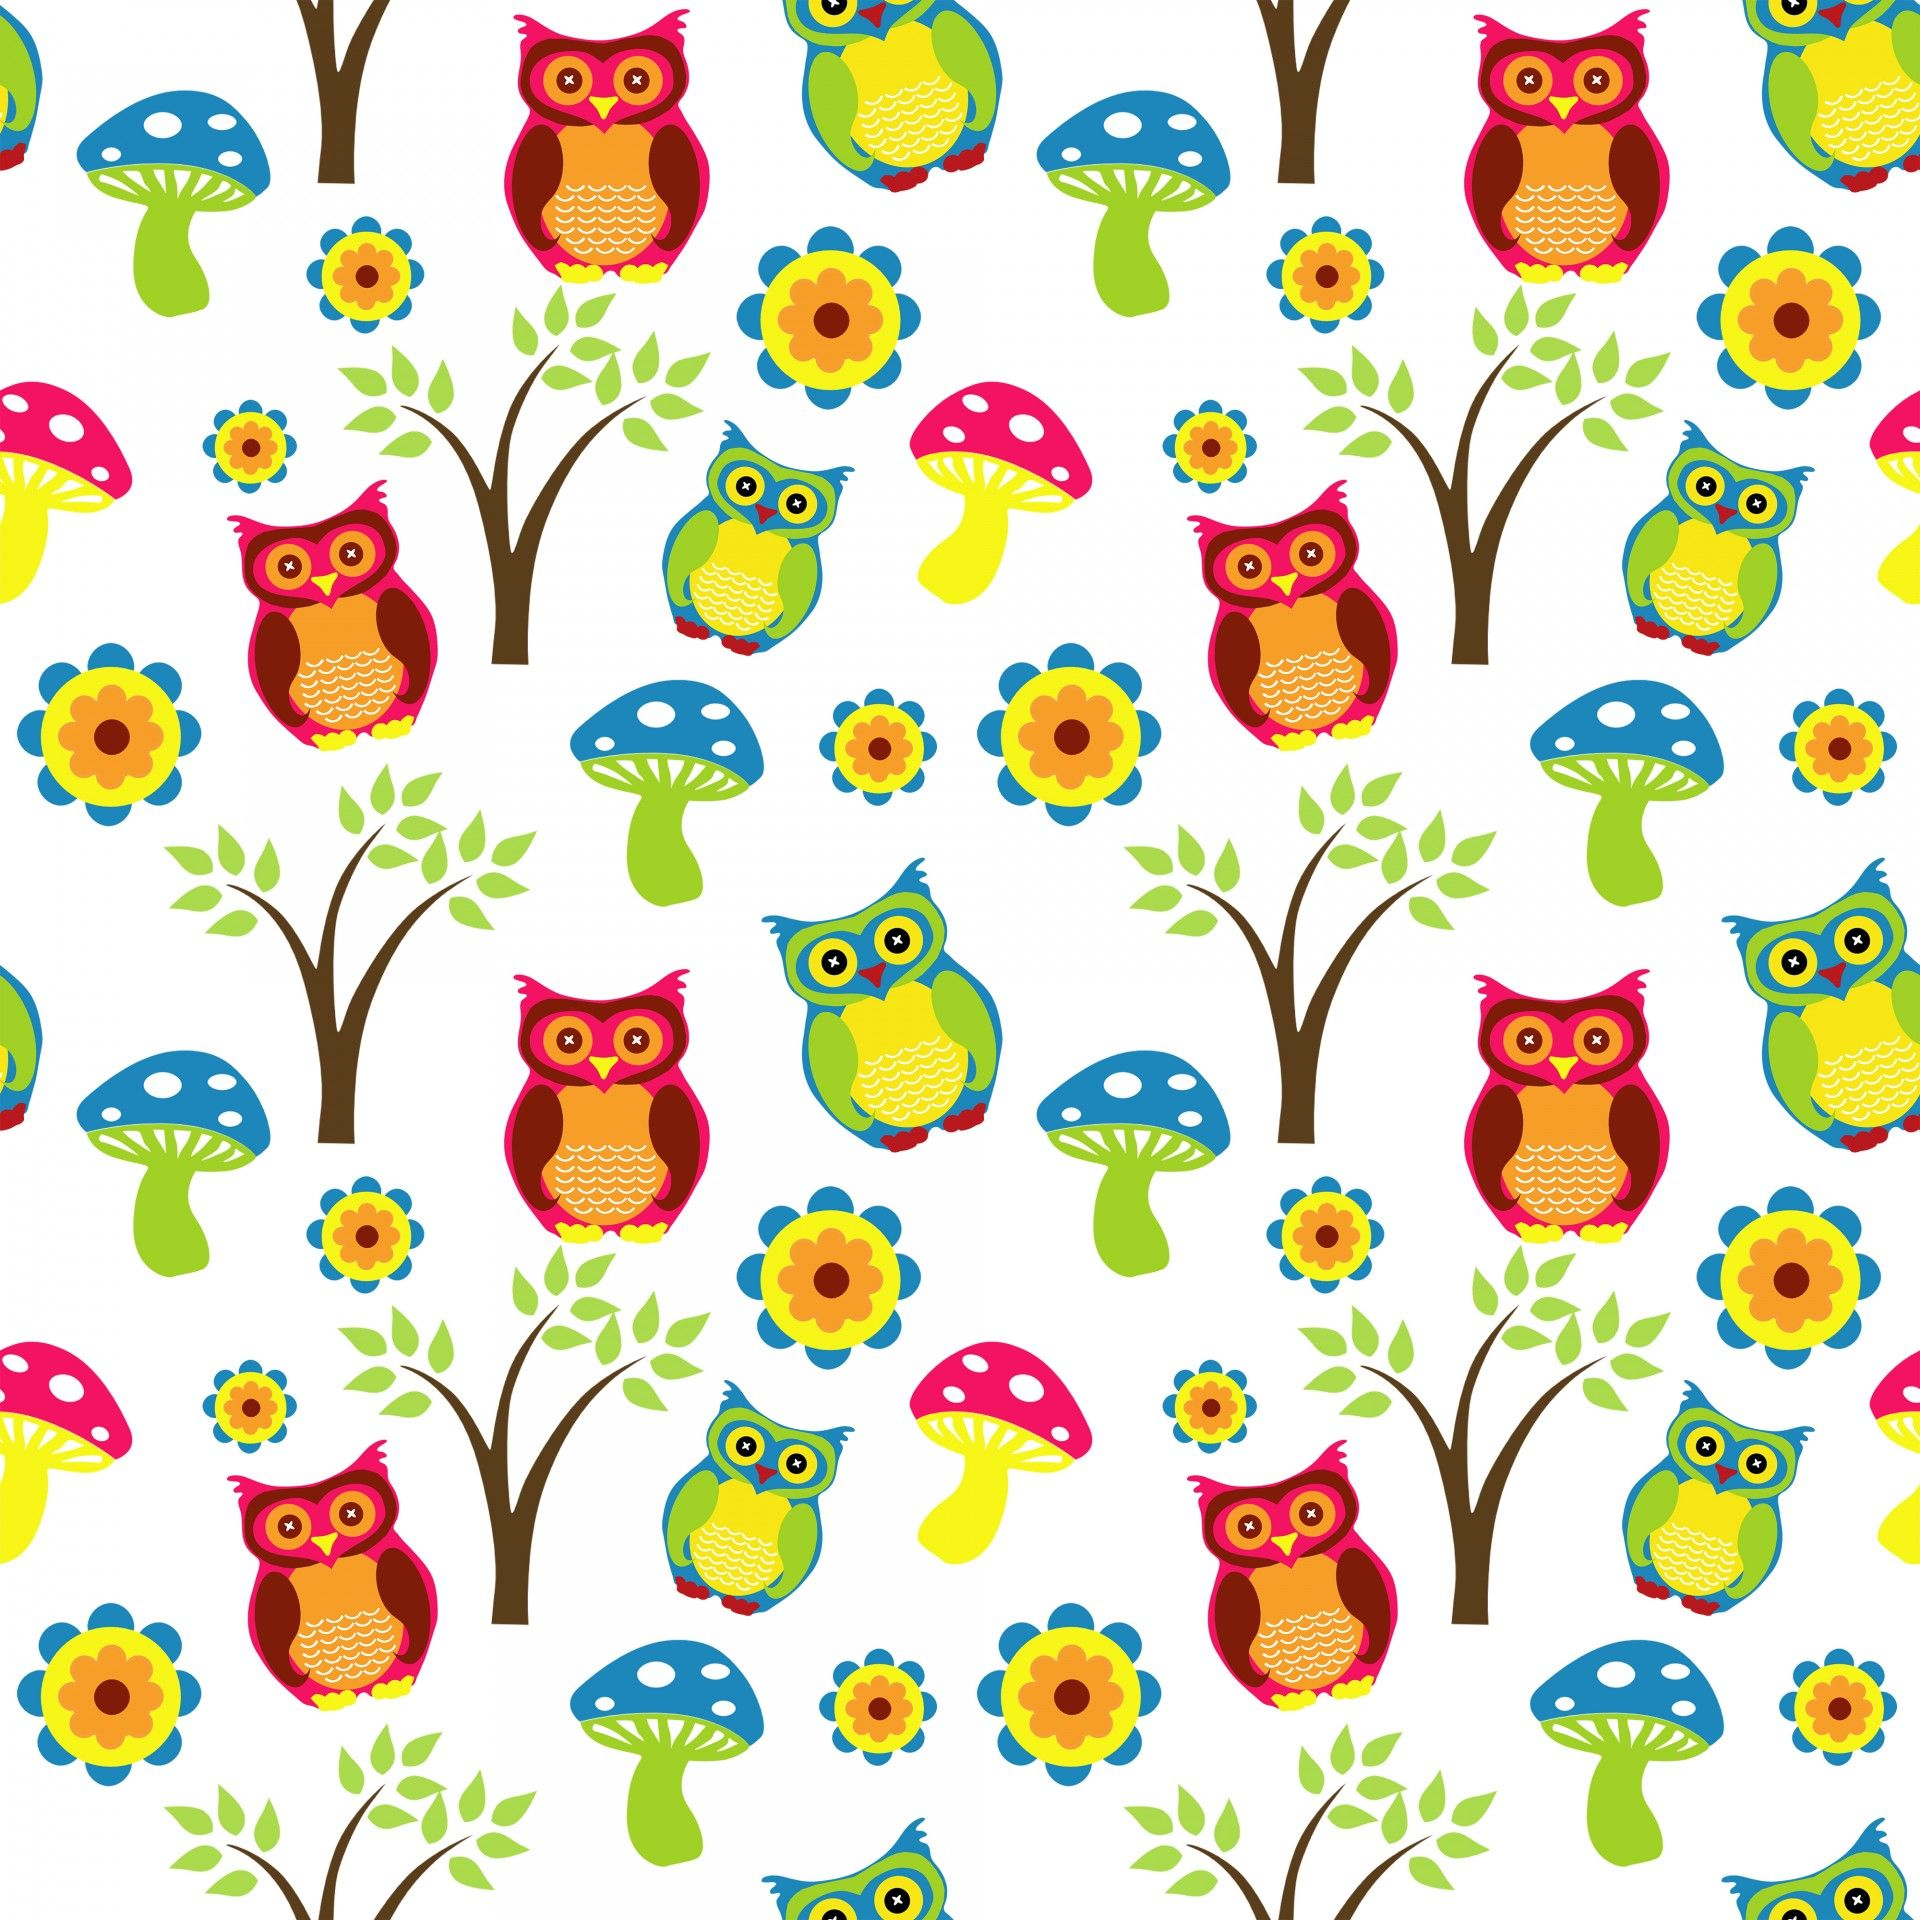 Free Mac Wallpaper Hd Cartoon Owl Wallpaper Owls Pinterest